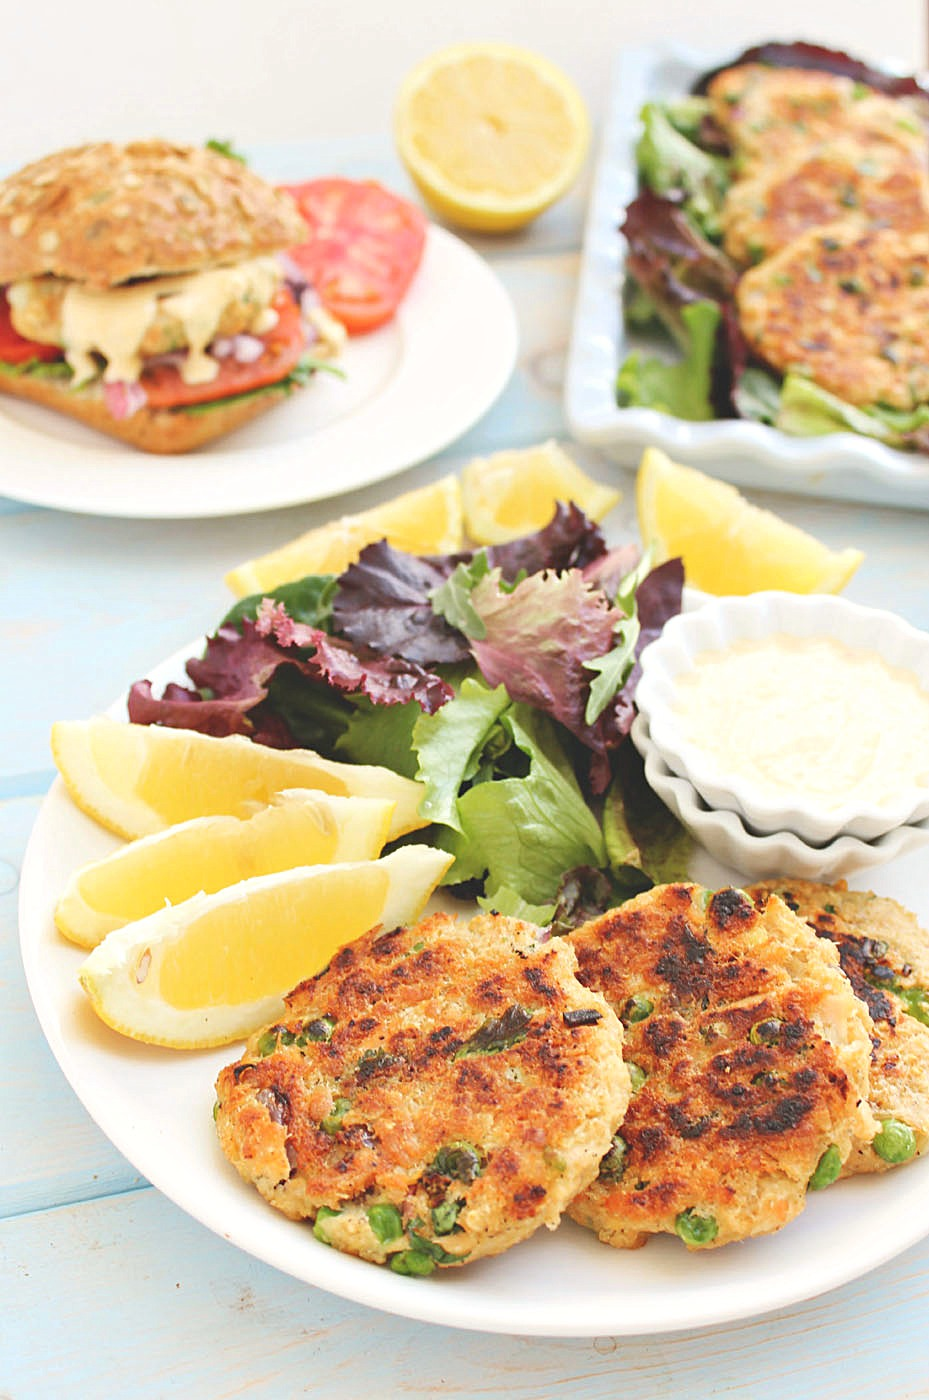 Salmon Tuna Burgers with Spicy Garlic Lemon Alioli